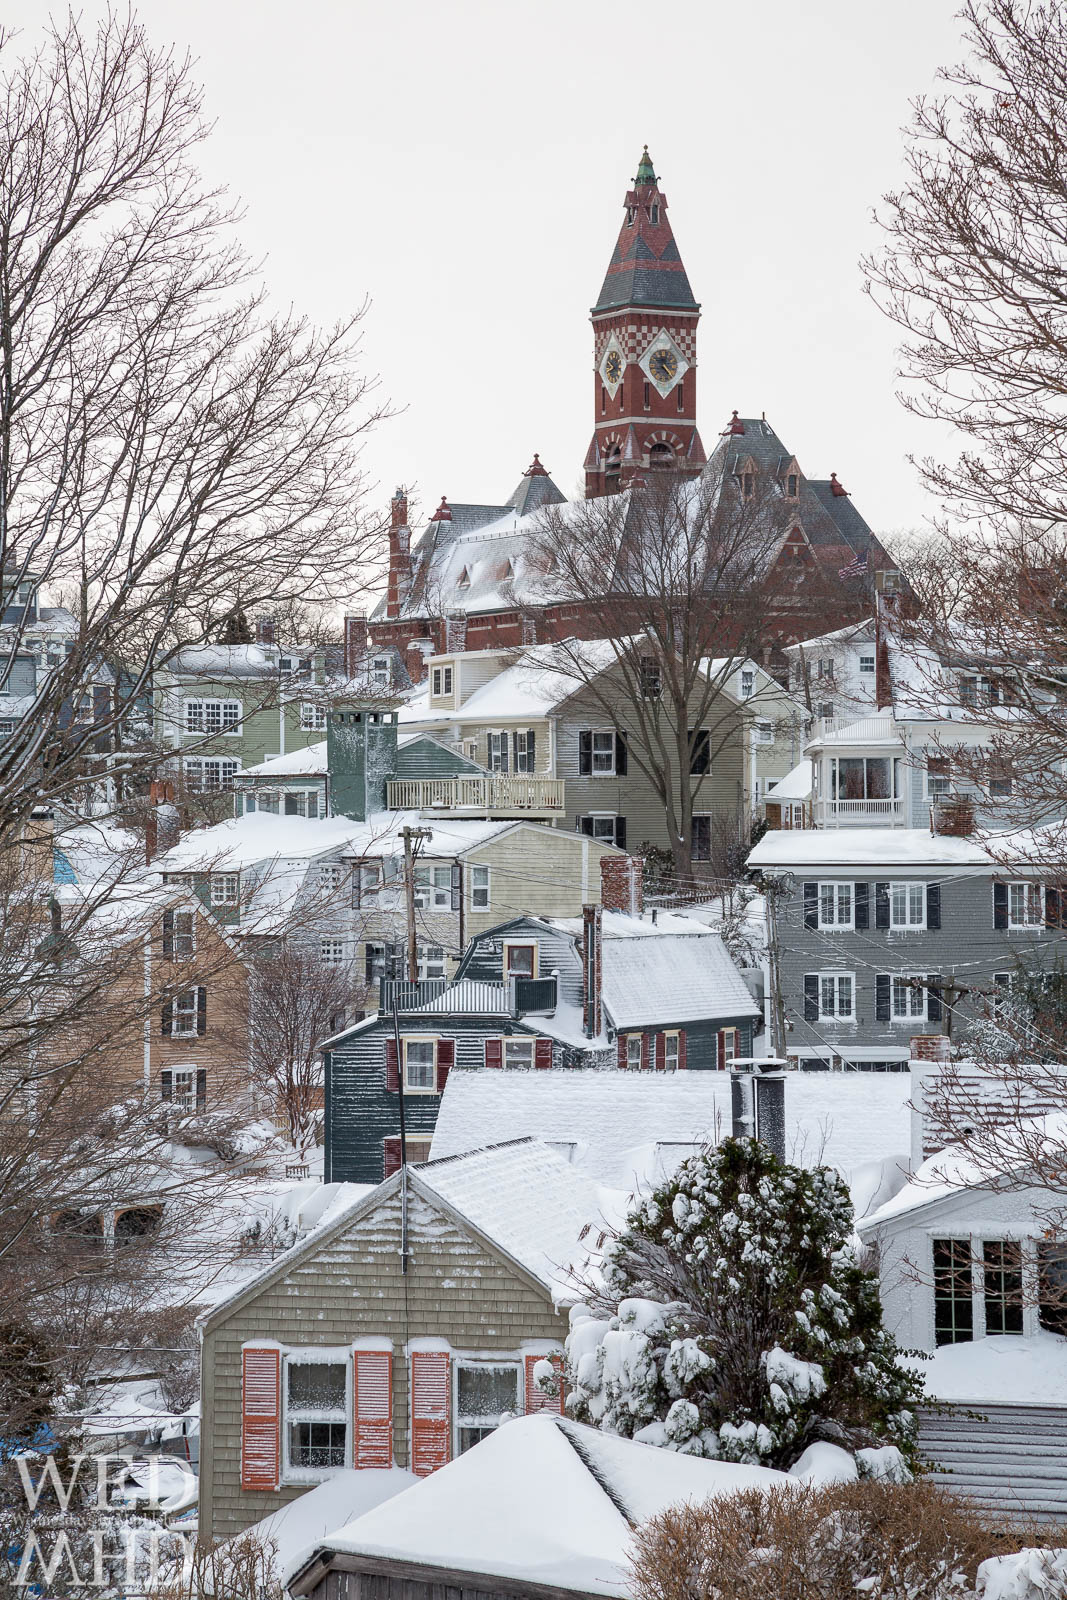 Top 13 of 2013 - Best Images of the Year - Marblehead, MA